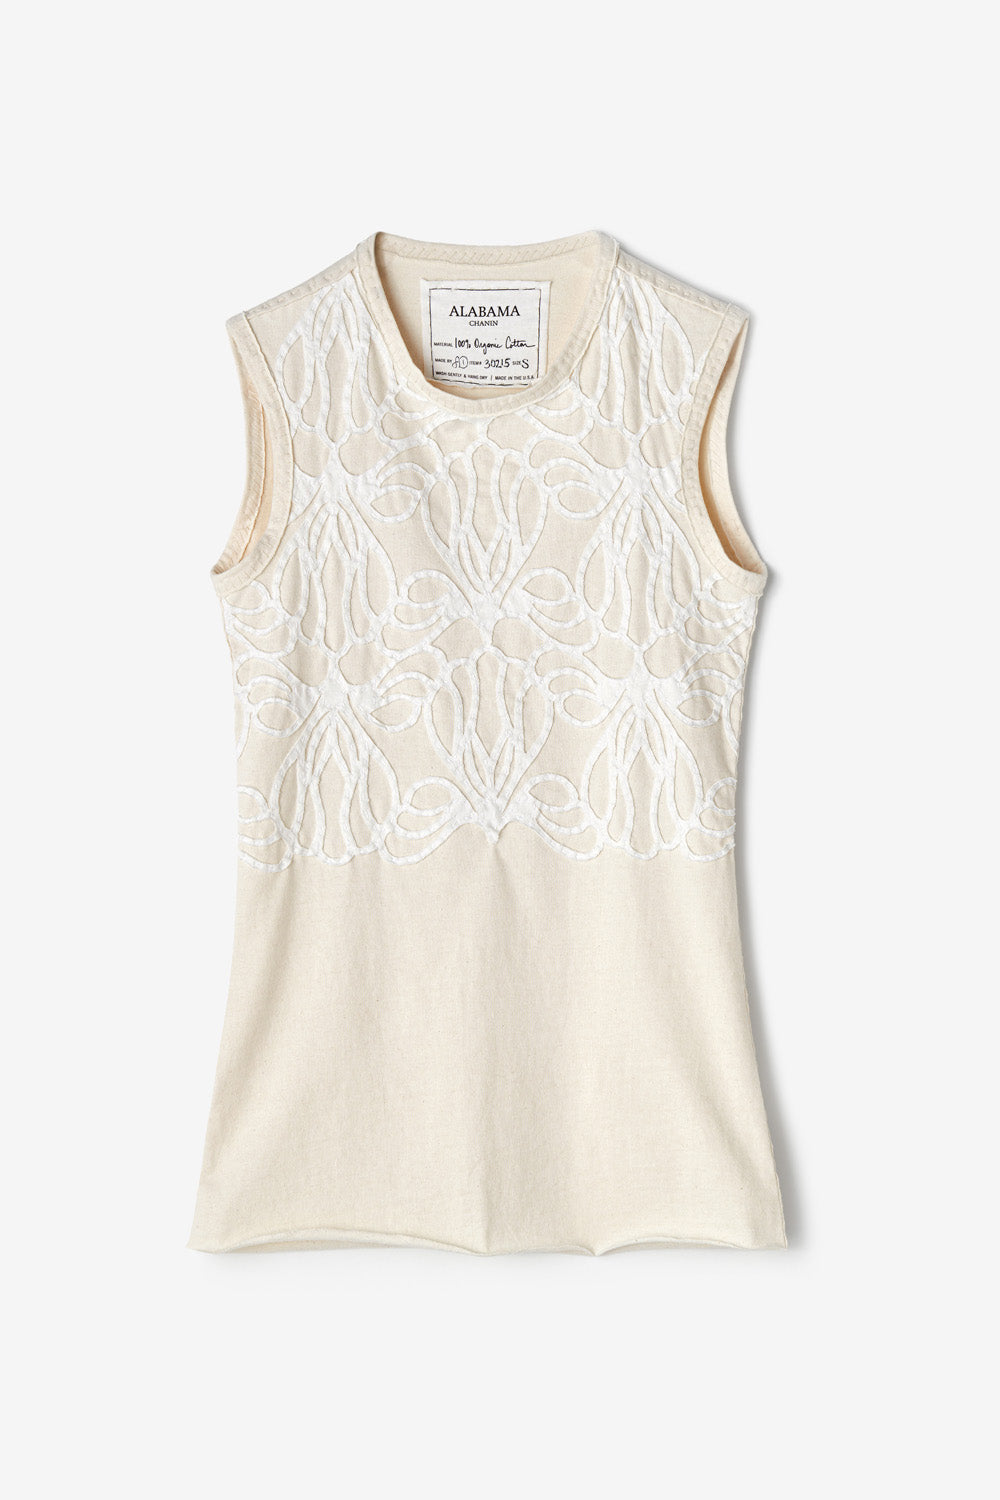 Alabama Chanin Adena Top Women's Organic Hand-Sewn Fitted Top in Applique Lace